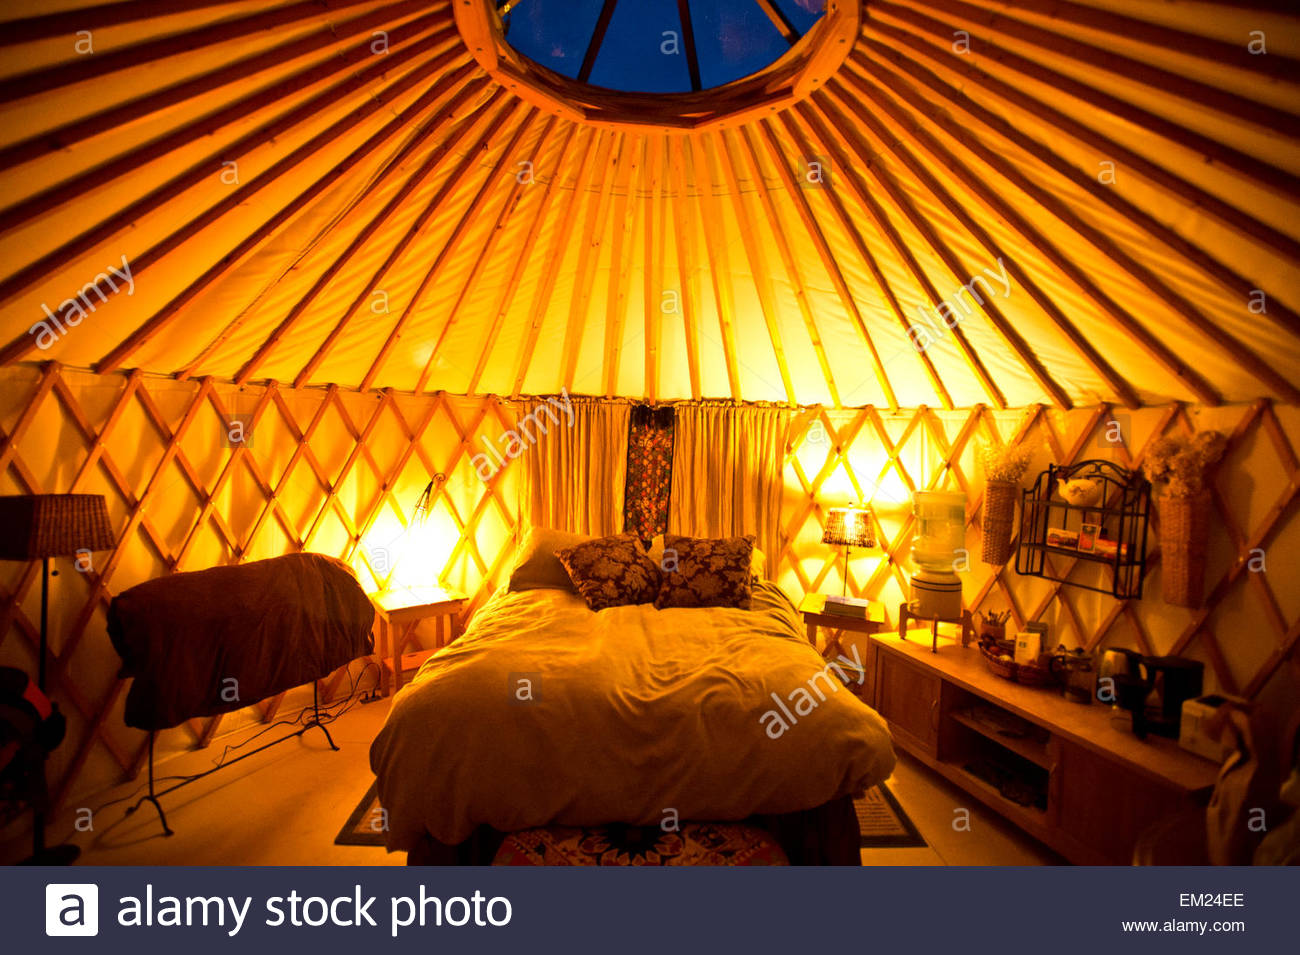 The Inside Of A Yurt Stock Photo Alamy Mongolia yurt inside high resolution stock photography and images. https www alamy com stock photo the inside of a yurt 81182038 html